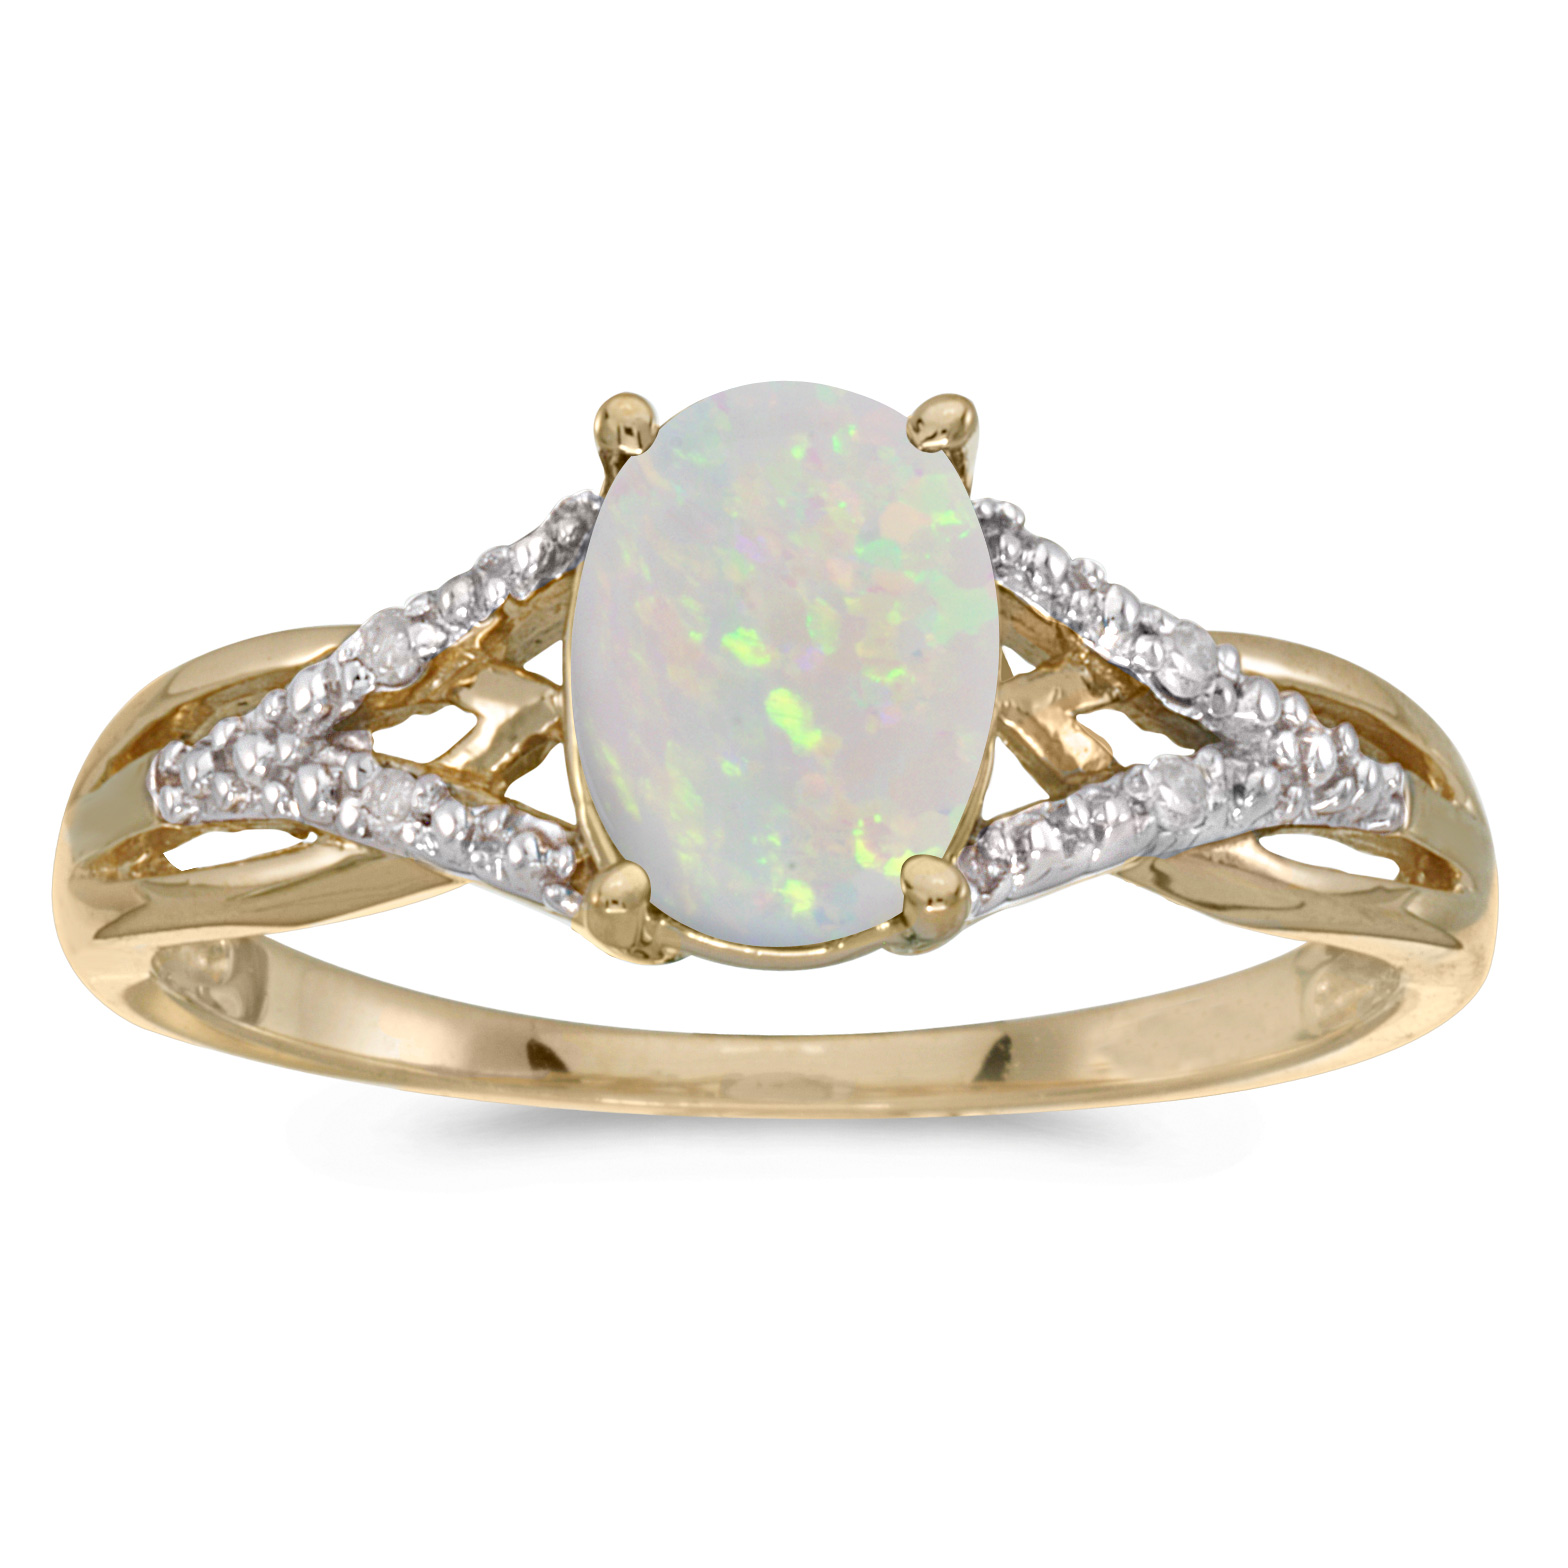 10k Yellow Gold Oval Opal And Diamond Ring by